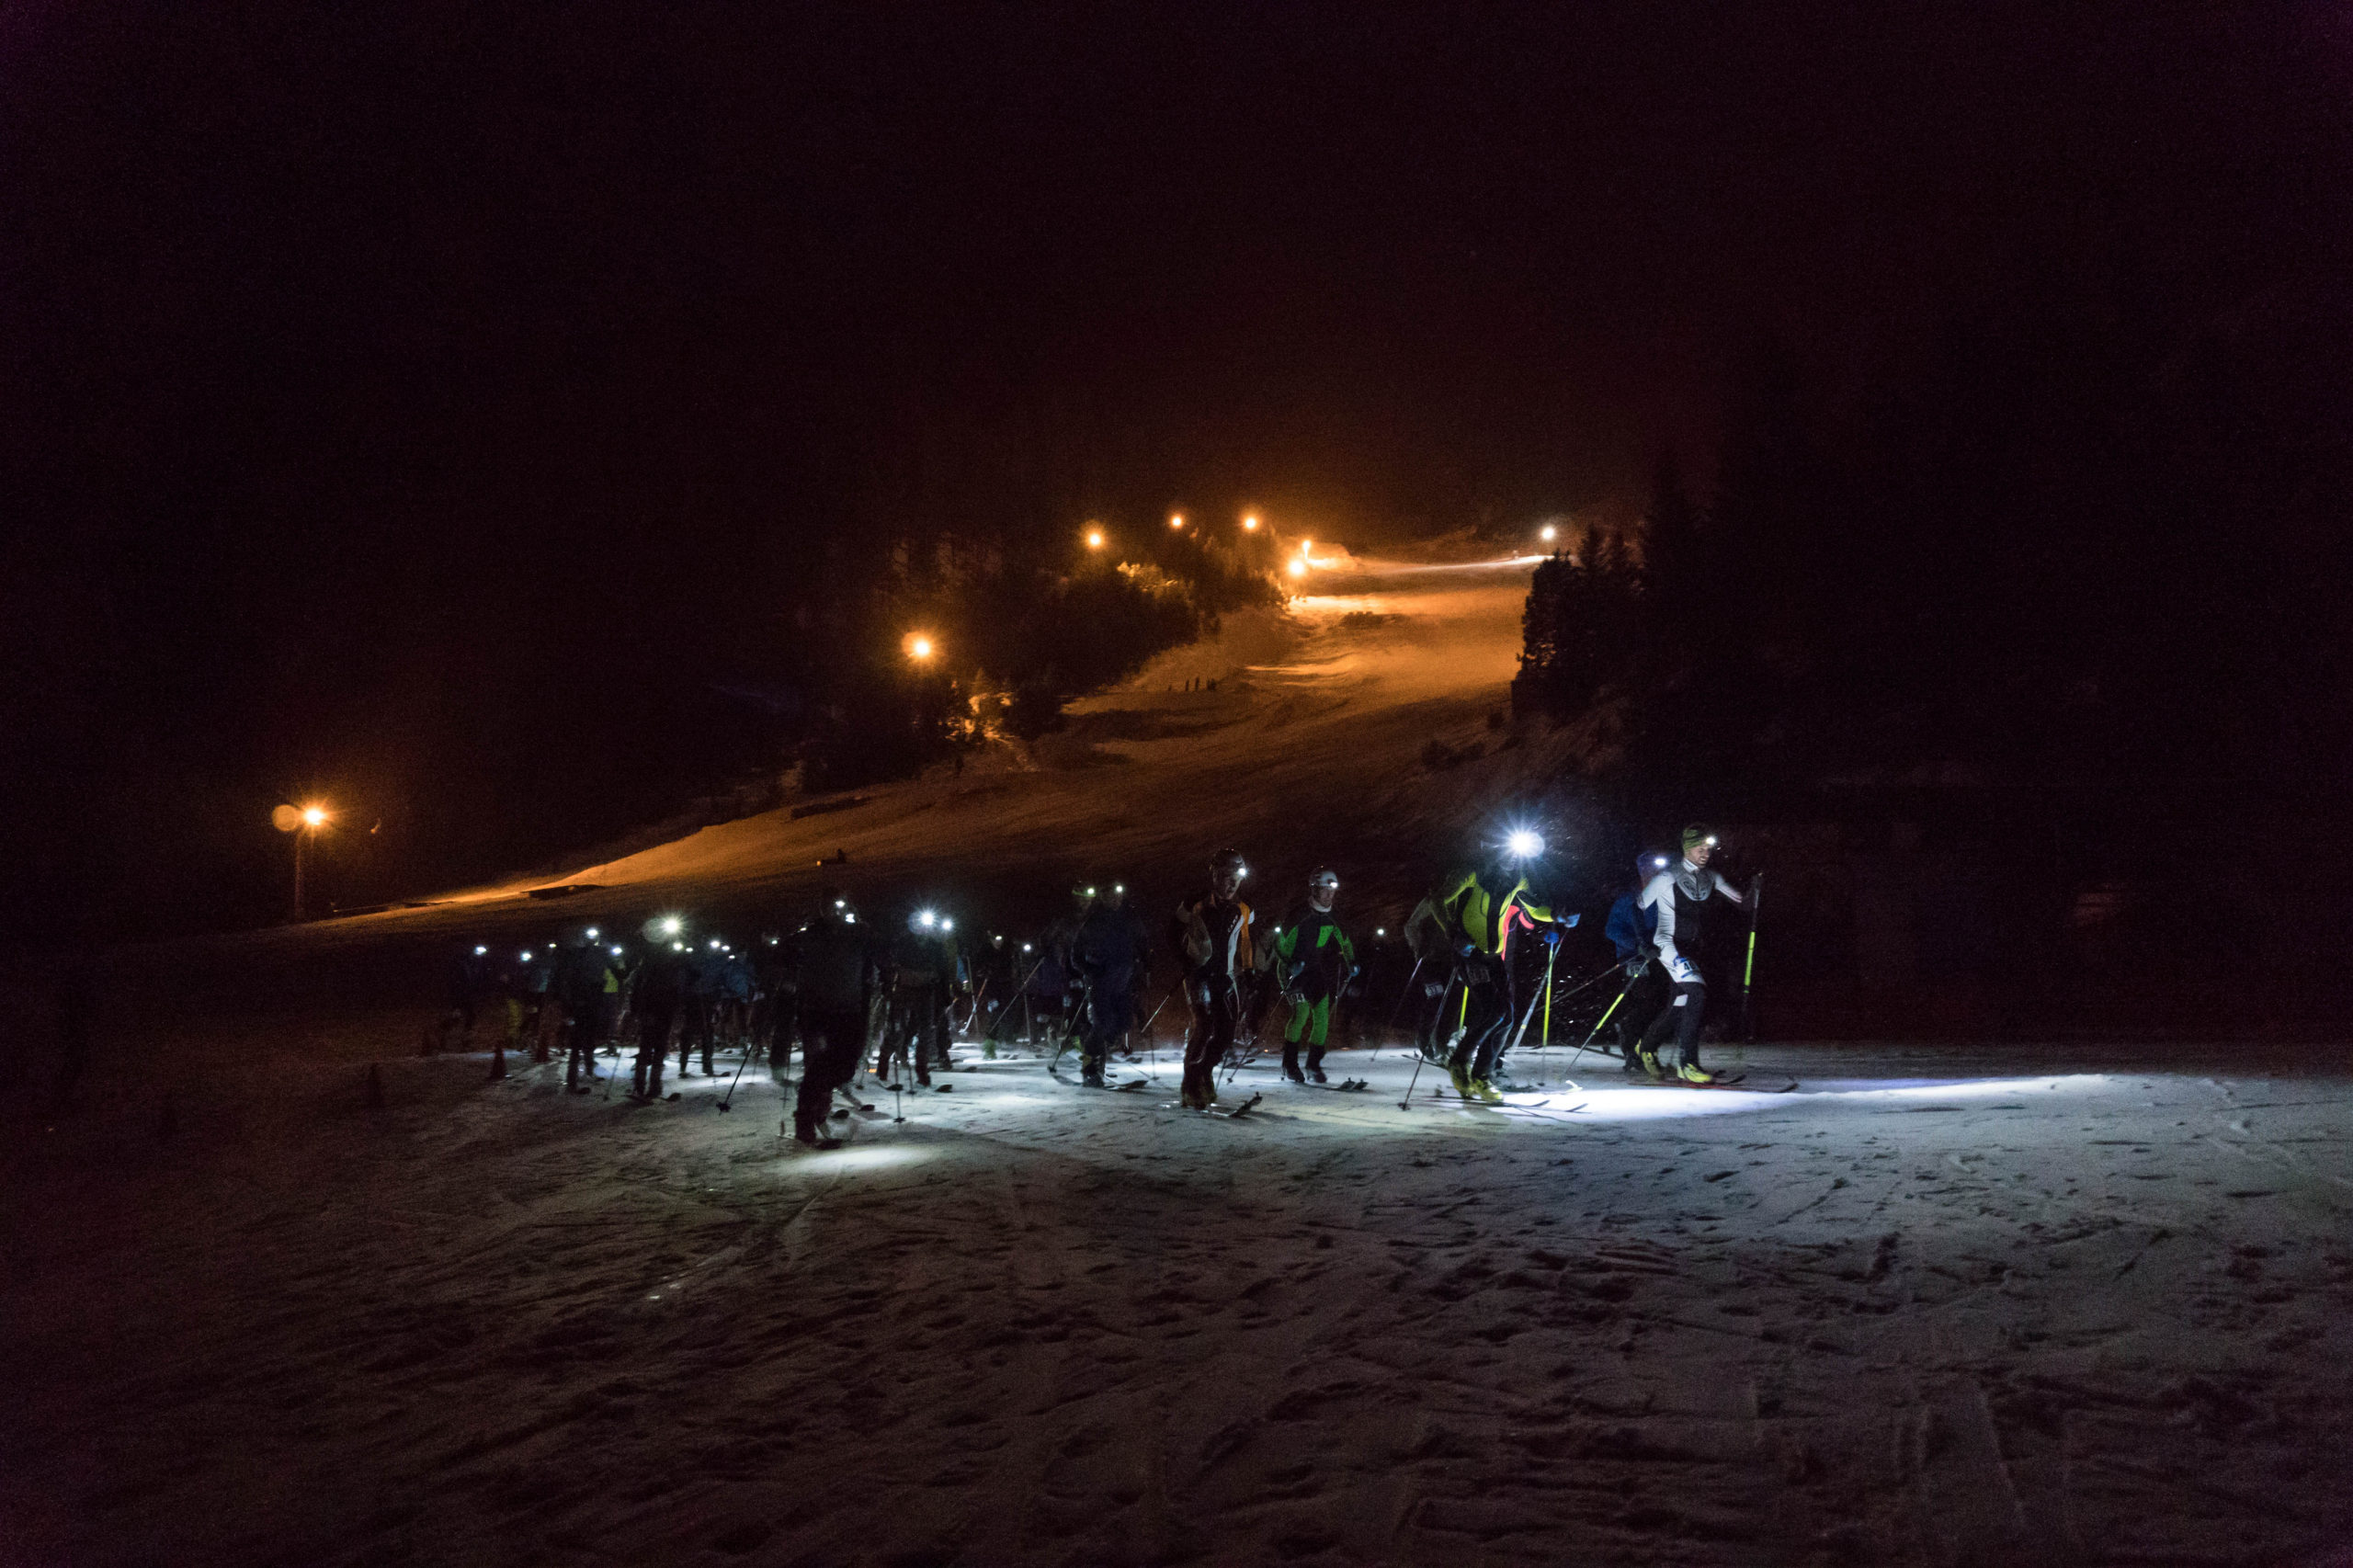 Beginner's Guide to SkiMo Racing missoula rando racers, CREDIT bobby jahrig